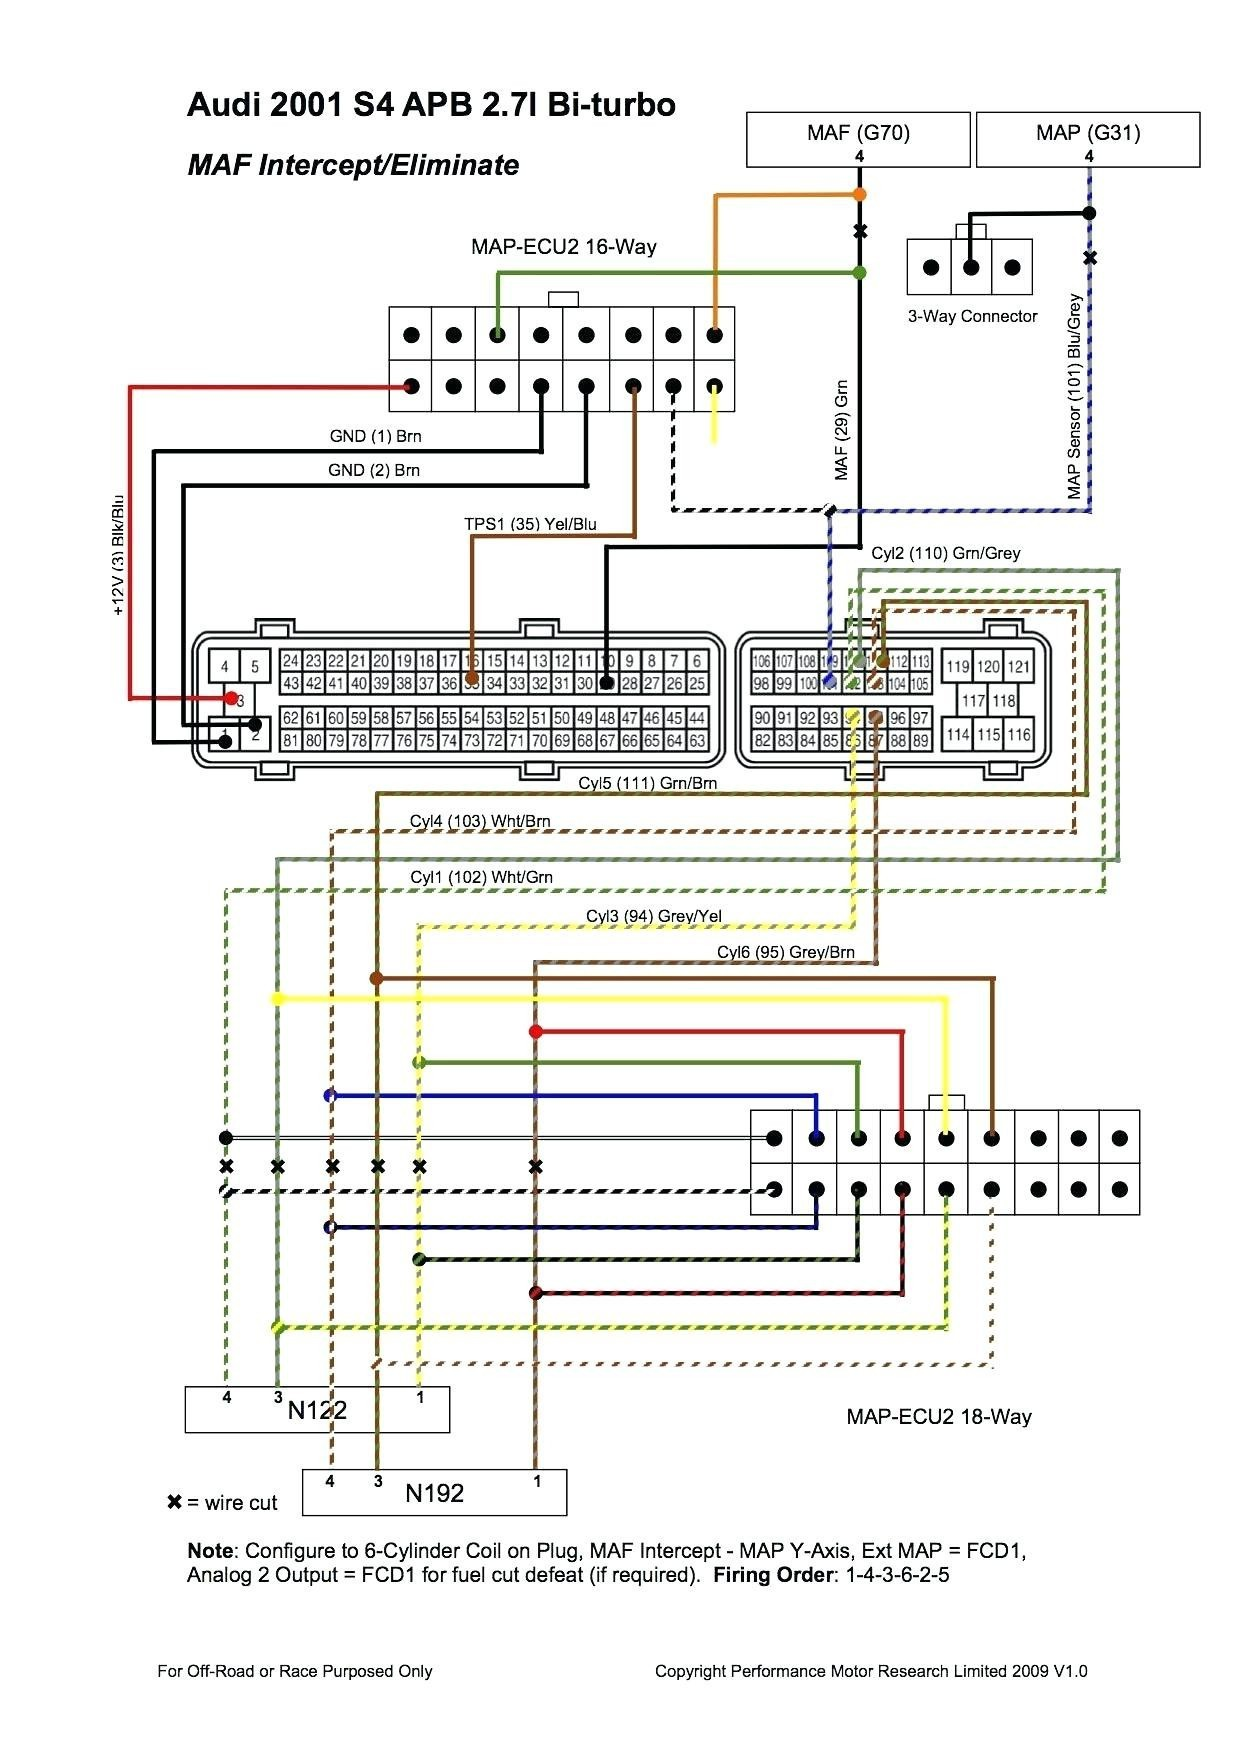 Toyota Celica Engine Diagram Mitsubishi Schematics Of Toyota Celica Engine Diagram toyota 7afe Engine Diagram Wiring Diagram Used